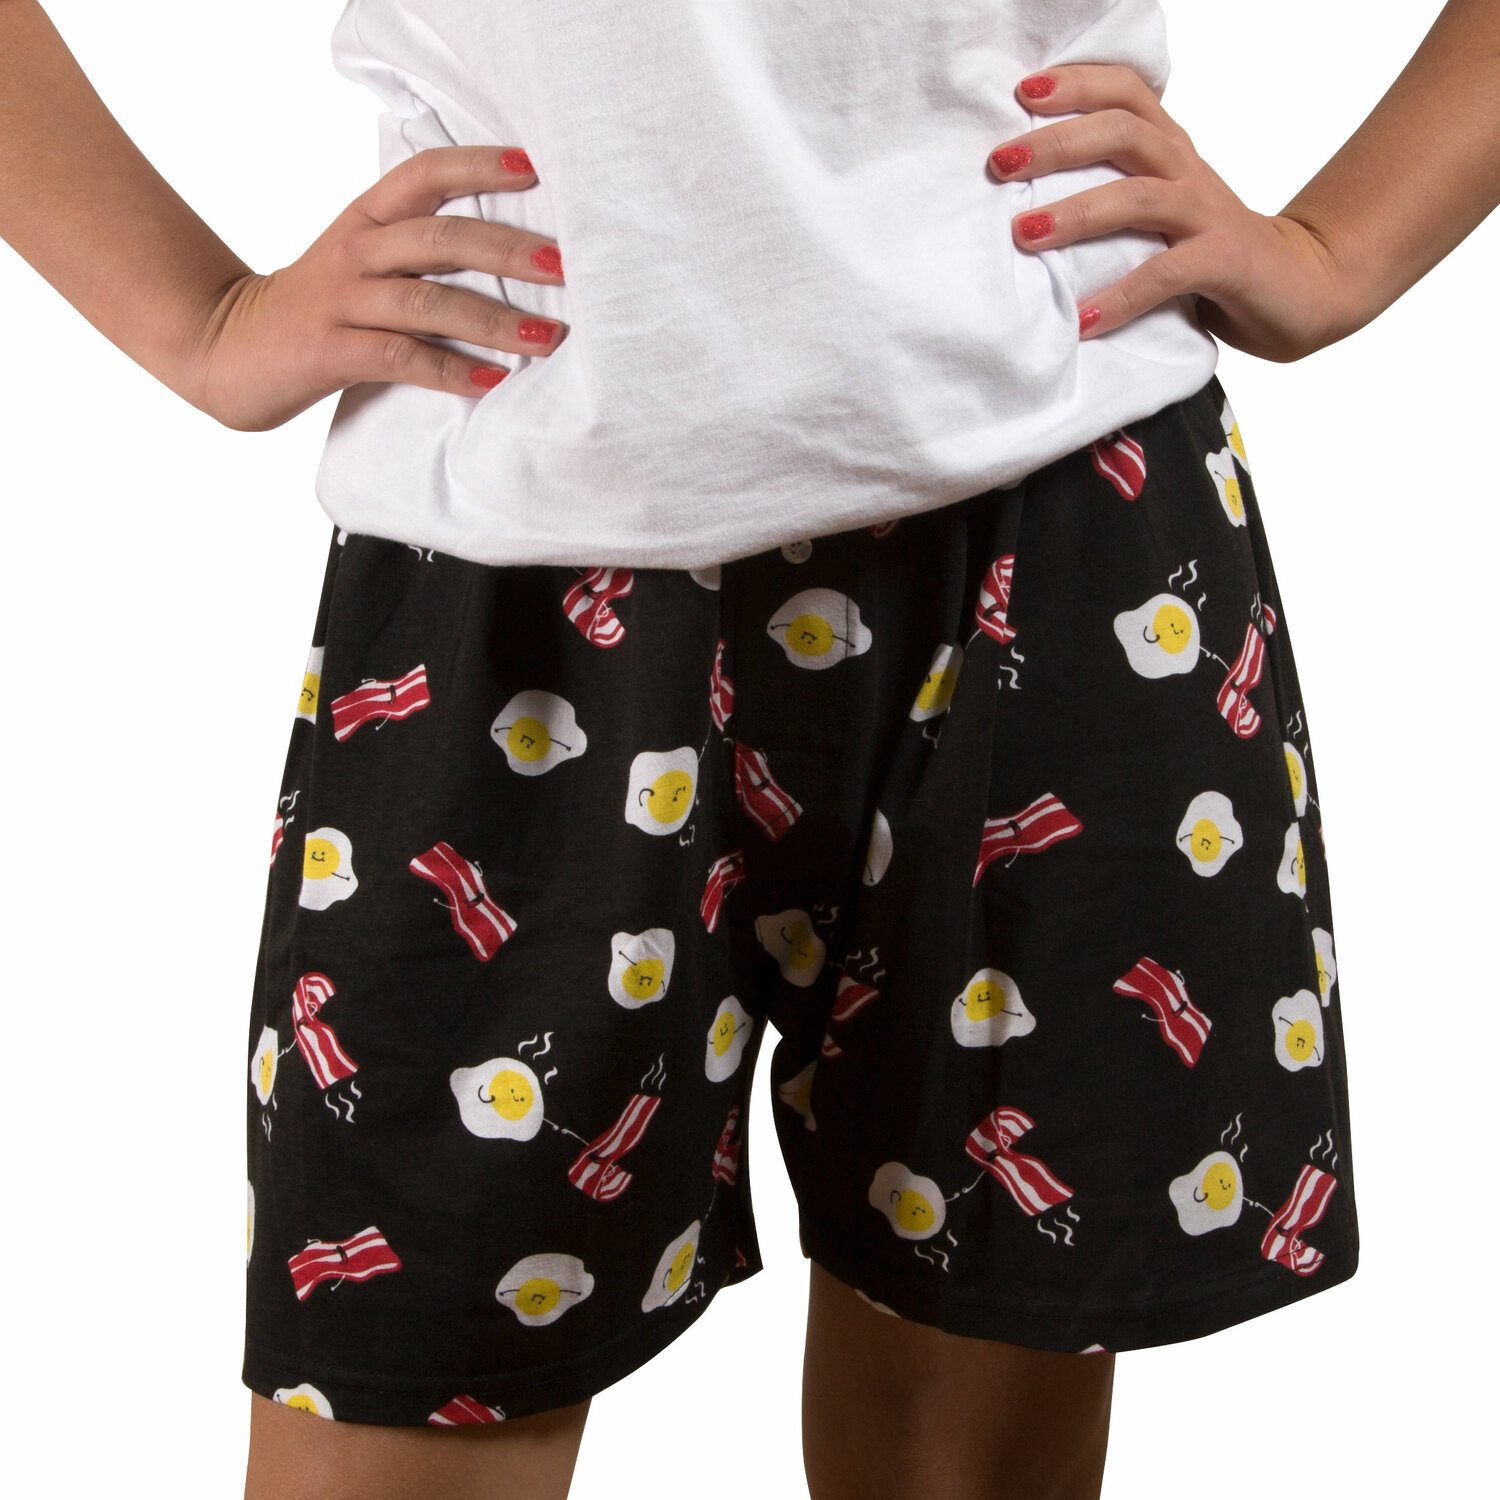 Bacon and Eggs by Late Night Snacks - Bacon and Eggs - XS Black Unisex Boxers